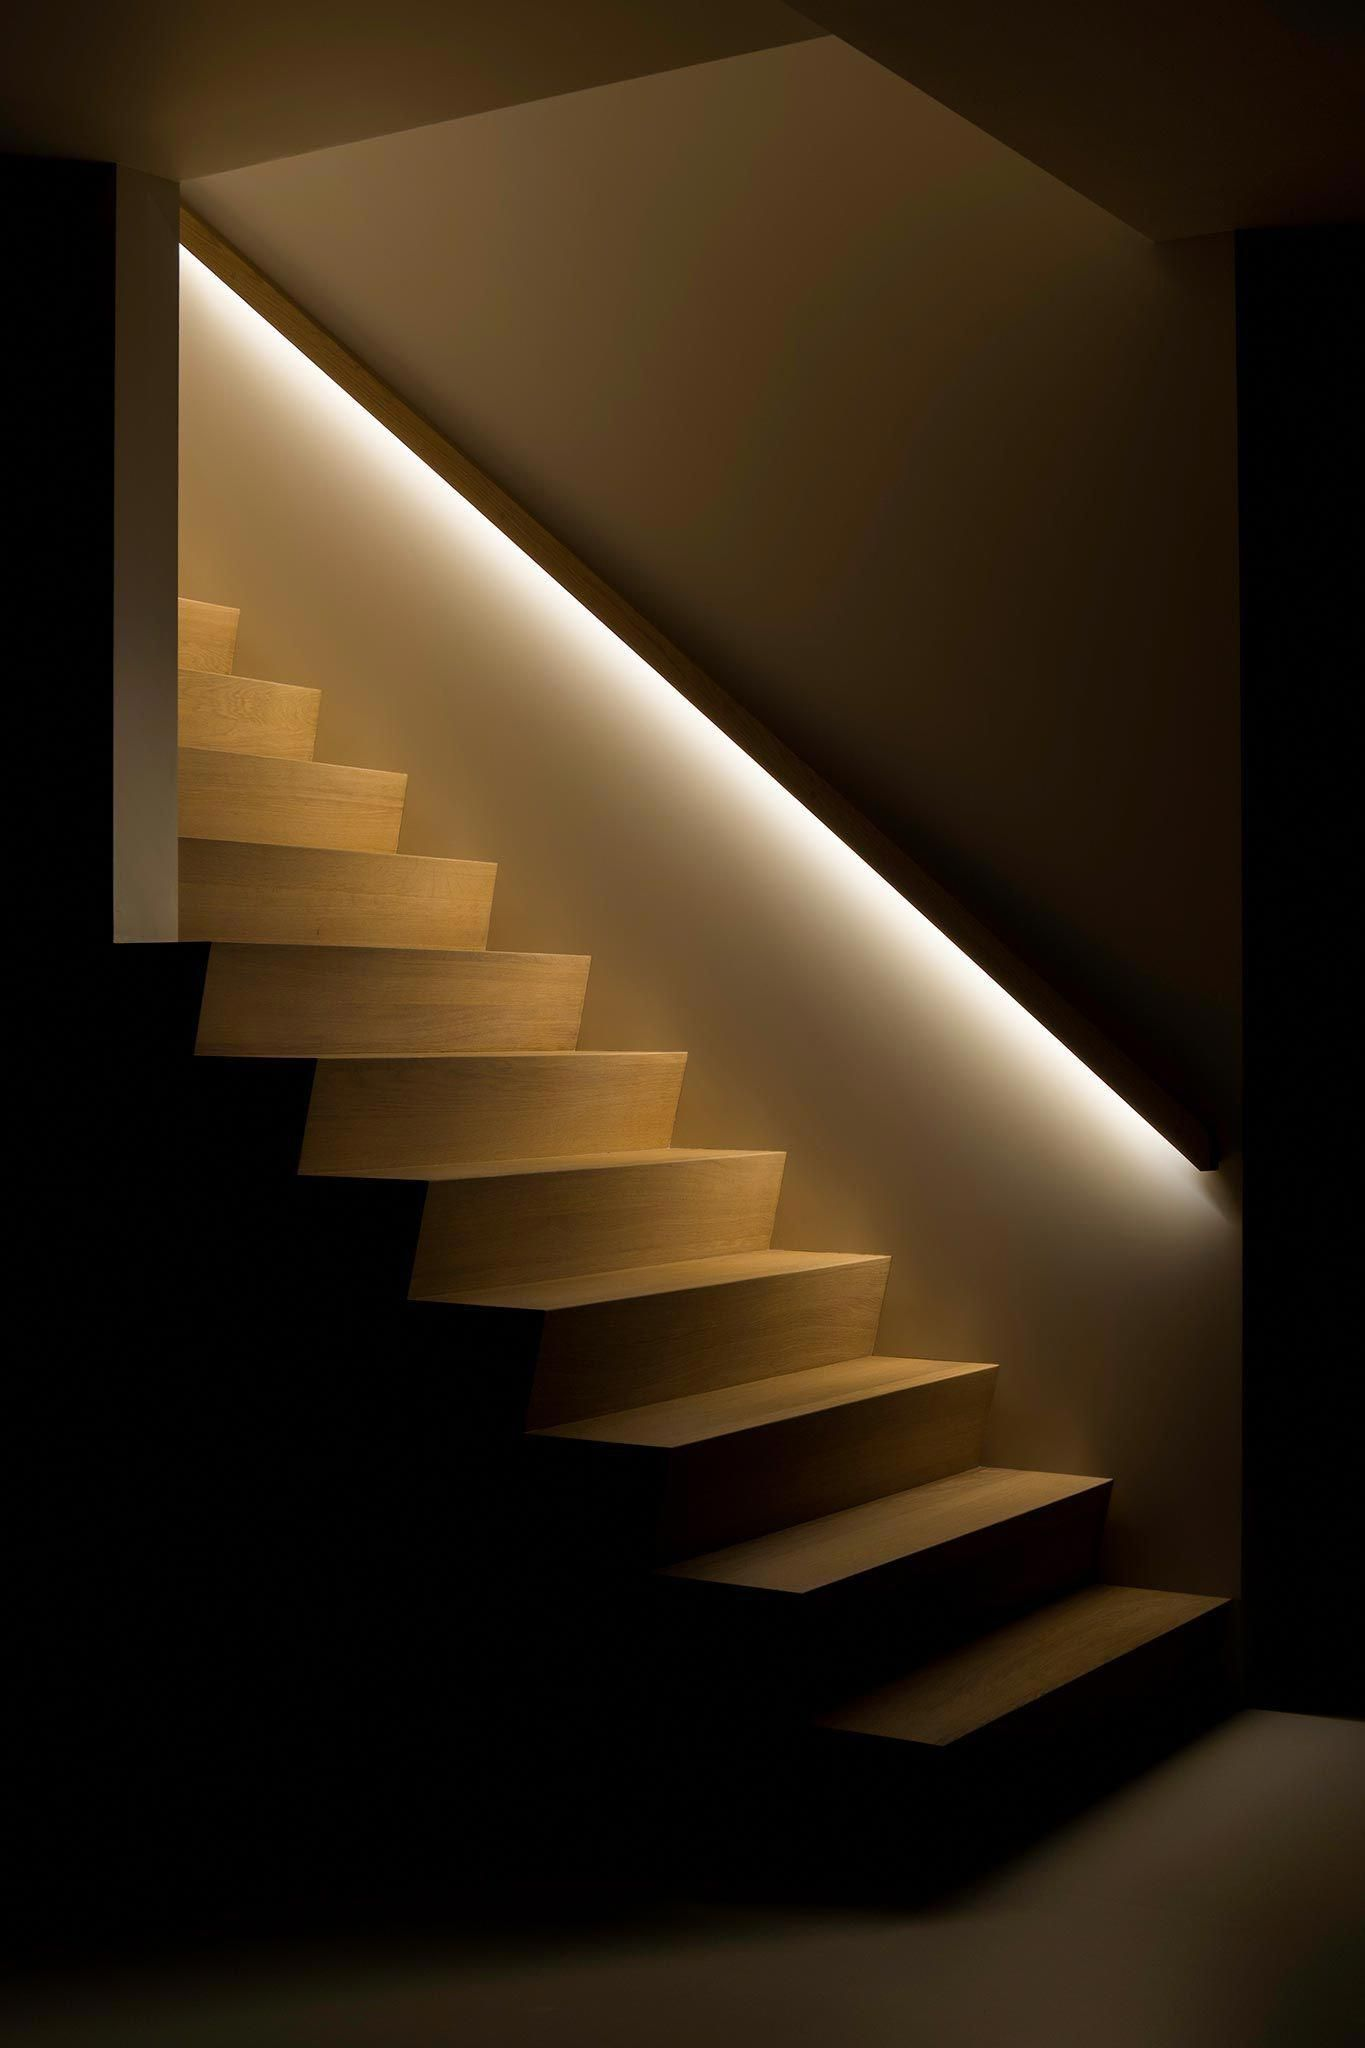 Staircase Ideas Design And Layout Ideas To Inspire Your Own Staircase Remodel Painted Diy